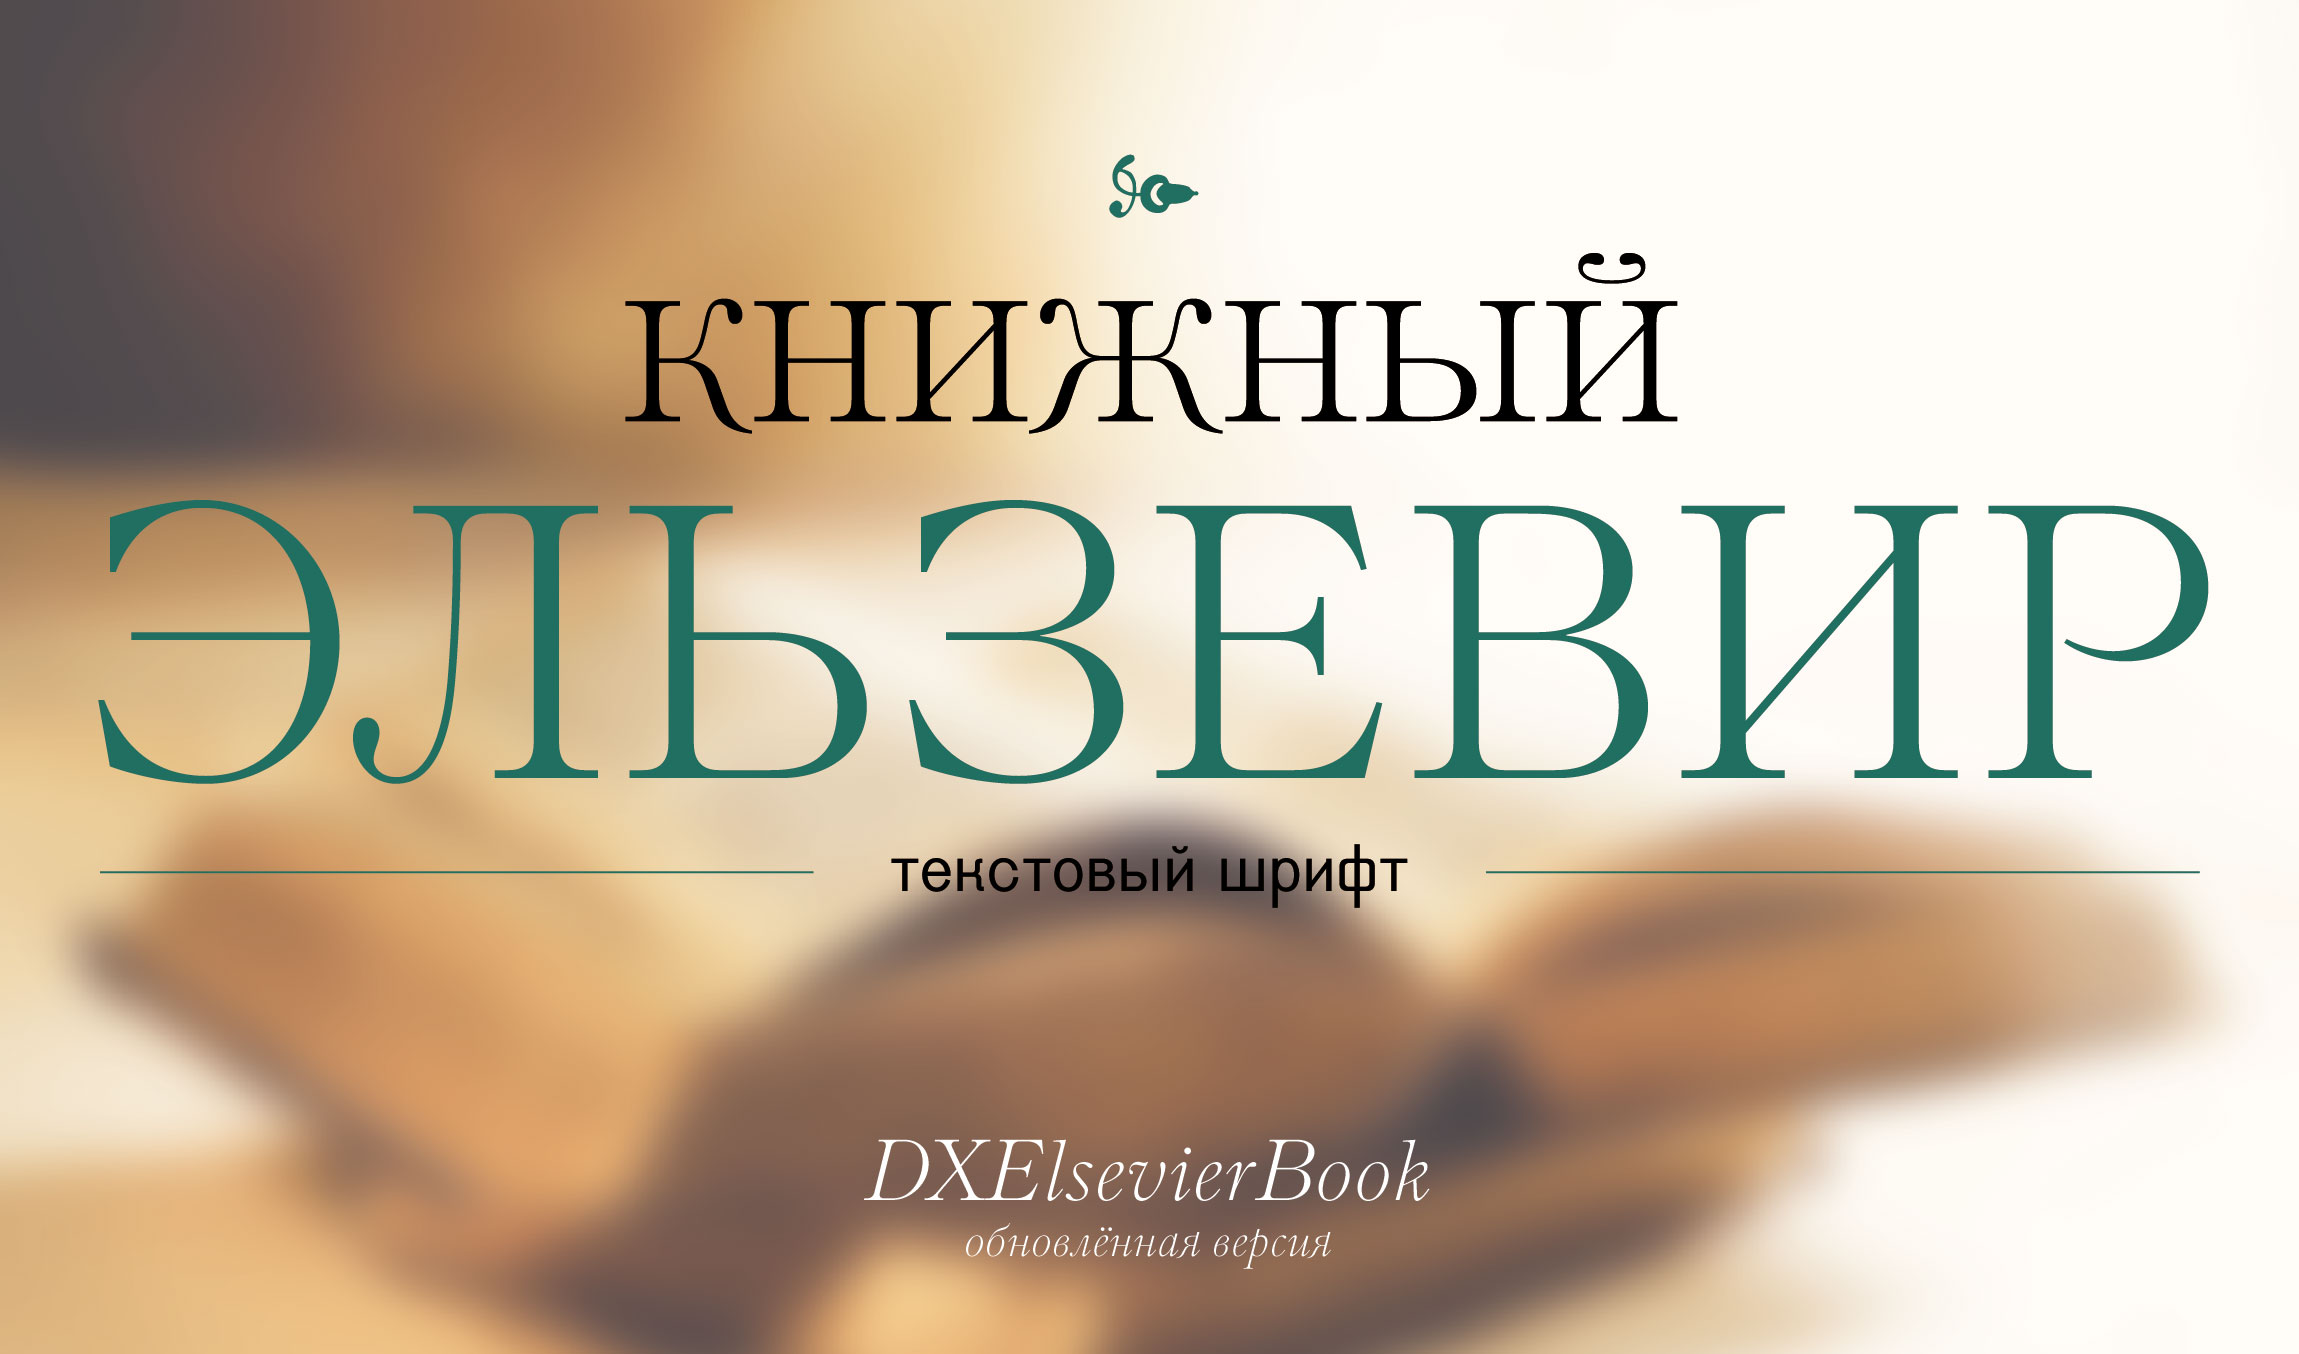 DXElsevierBook